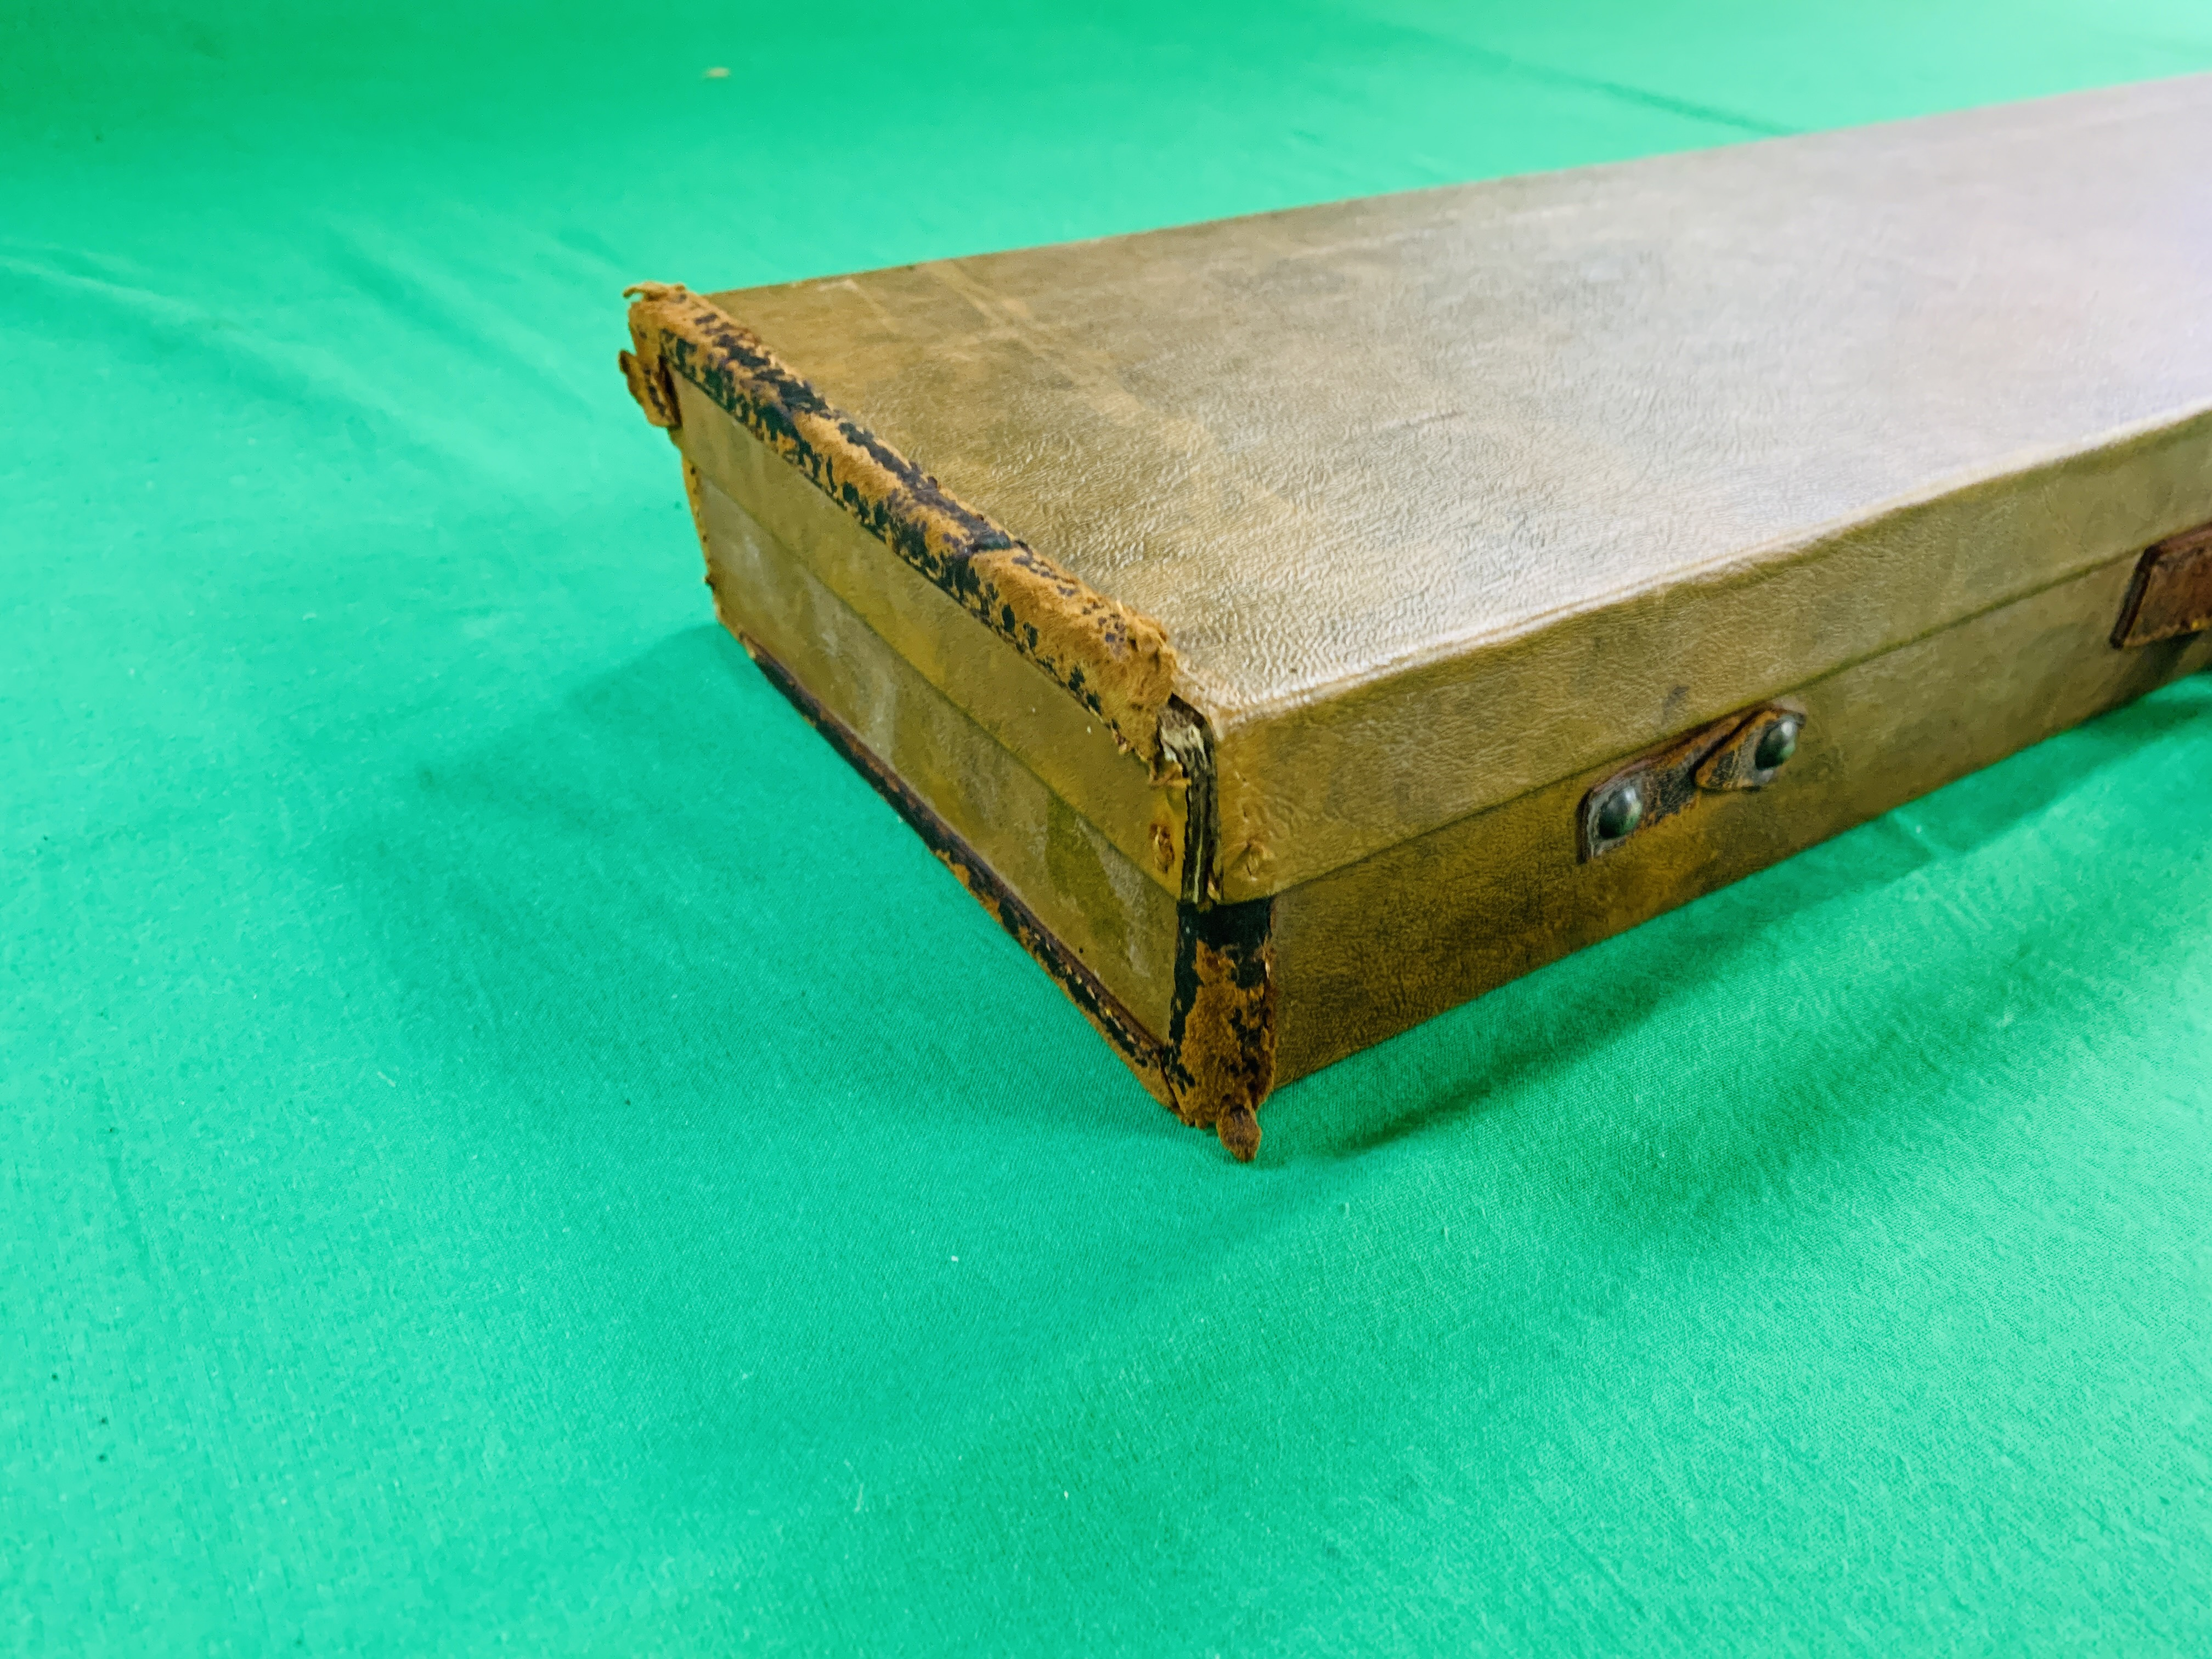 """LEATHERETTE 28 / 30"""" CASE WITH GALLYON OF KINGFISHER LABEL INSIDE - Image 11 of 11"""